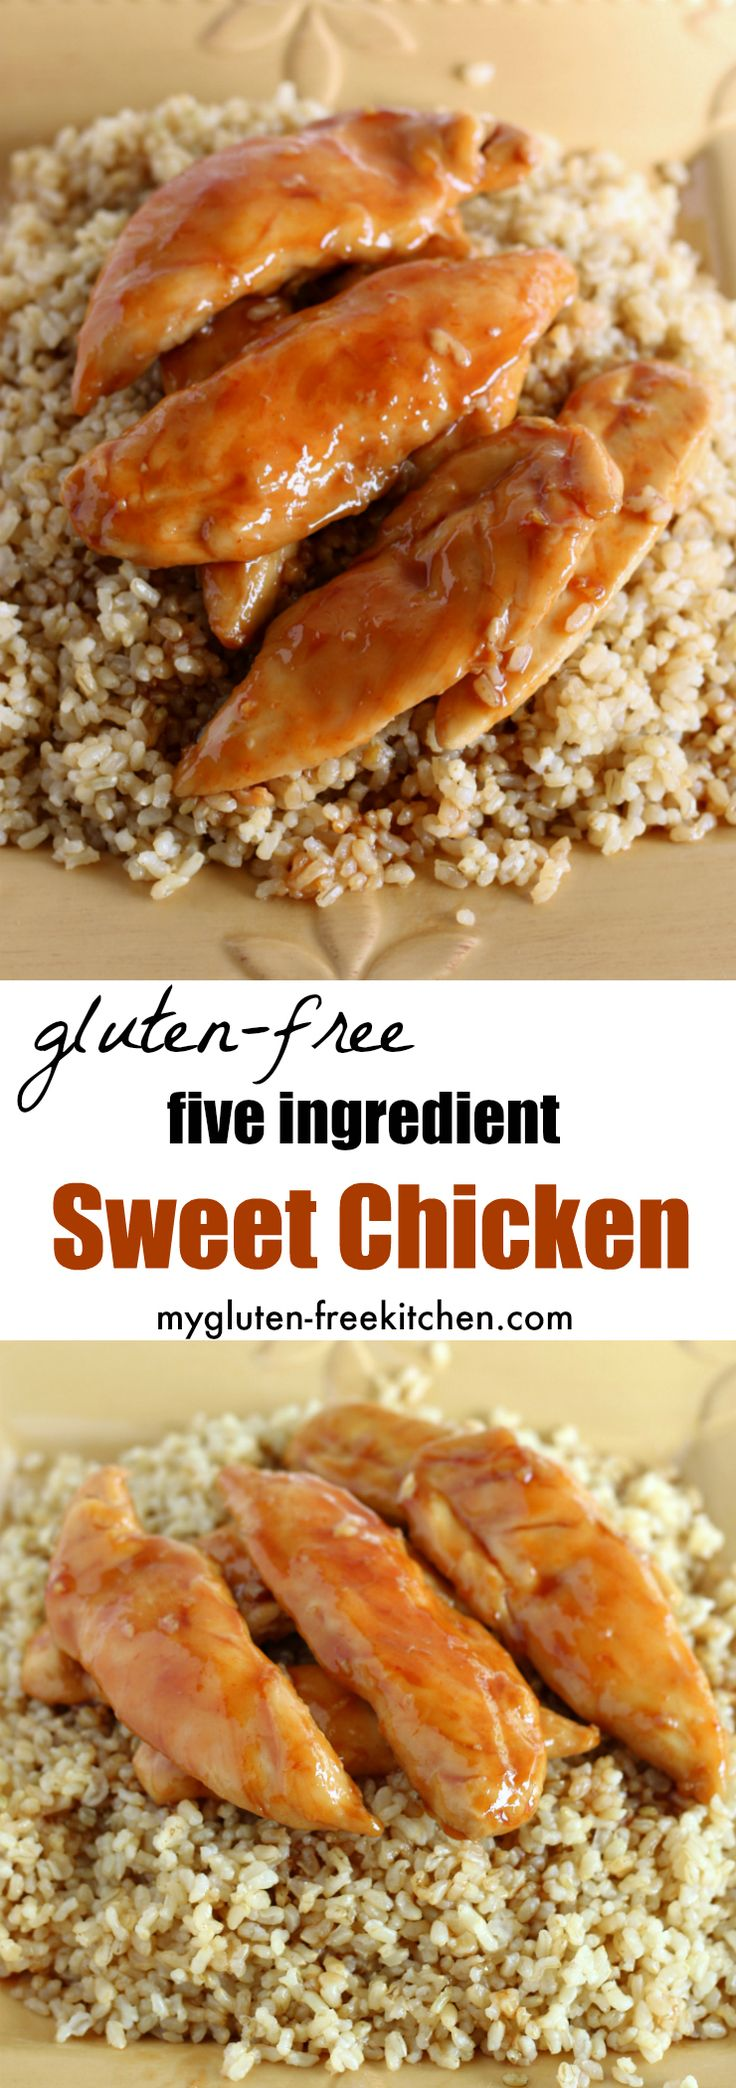 Gluten-free Sweet Chicken Recipe. Just five ingredients for this hearty meal. I like to serve over brown rice.